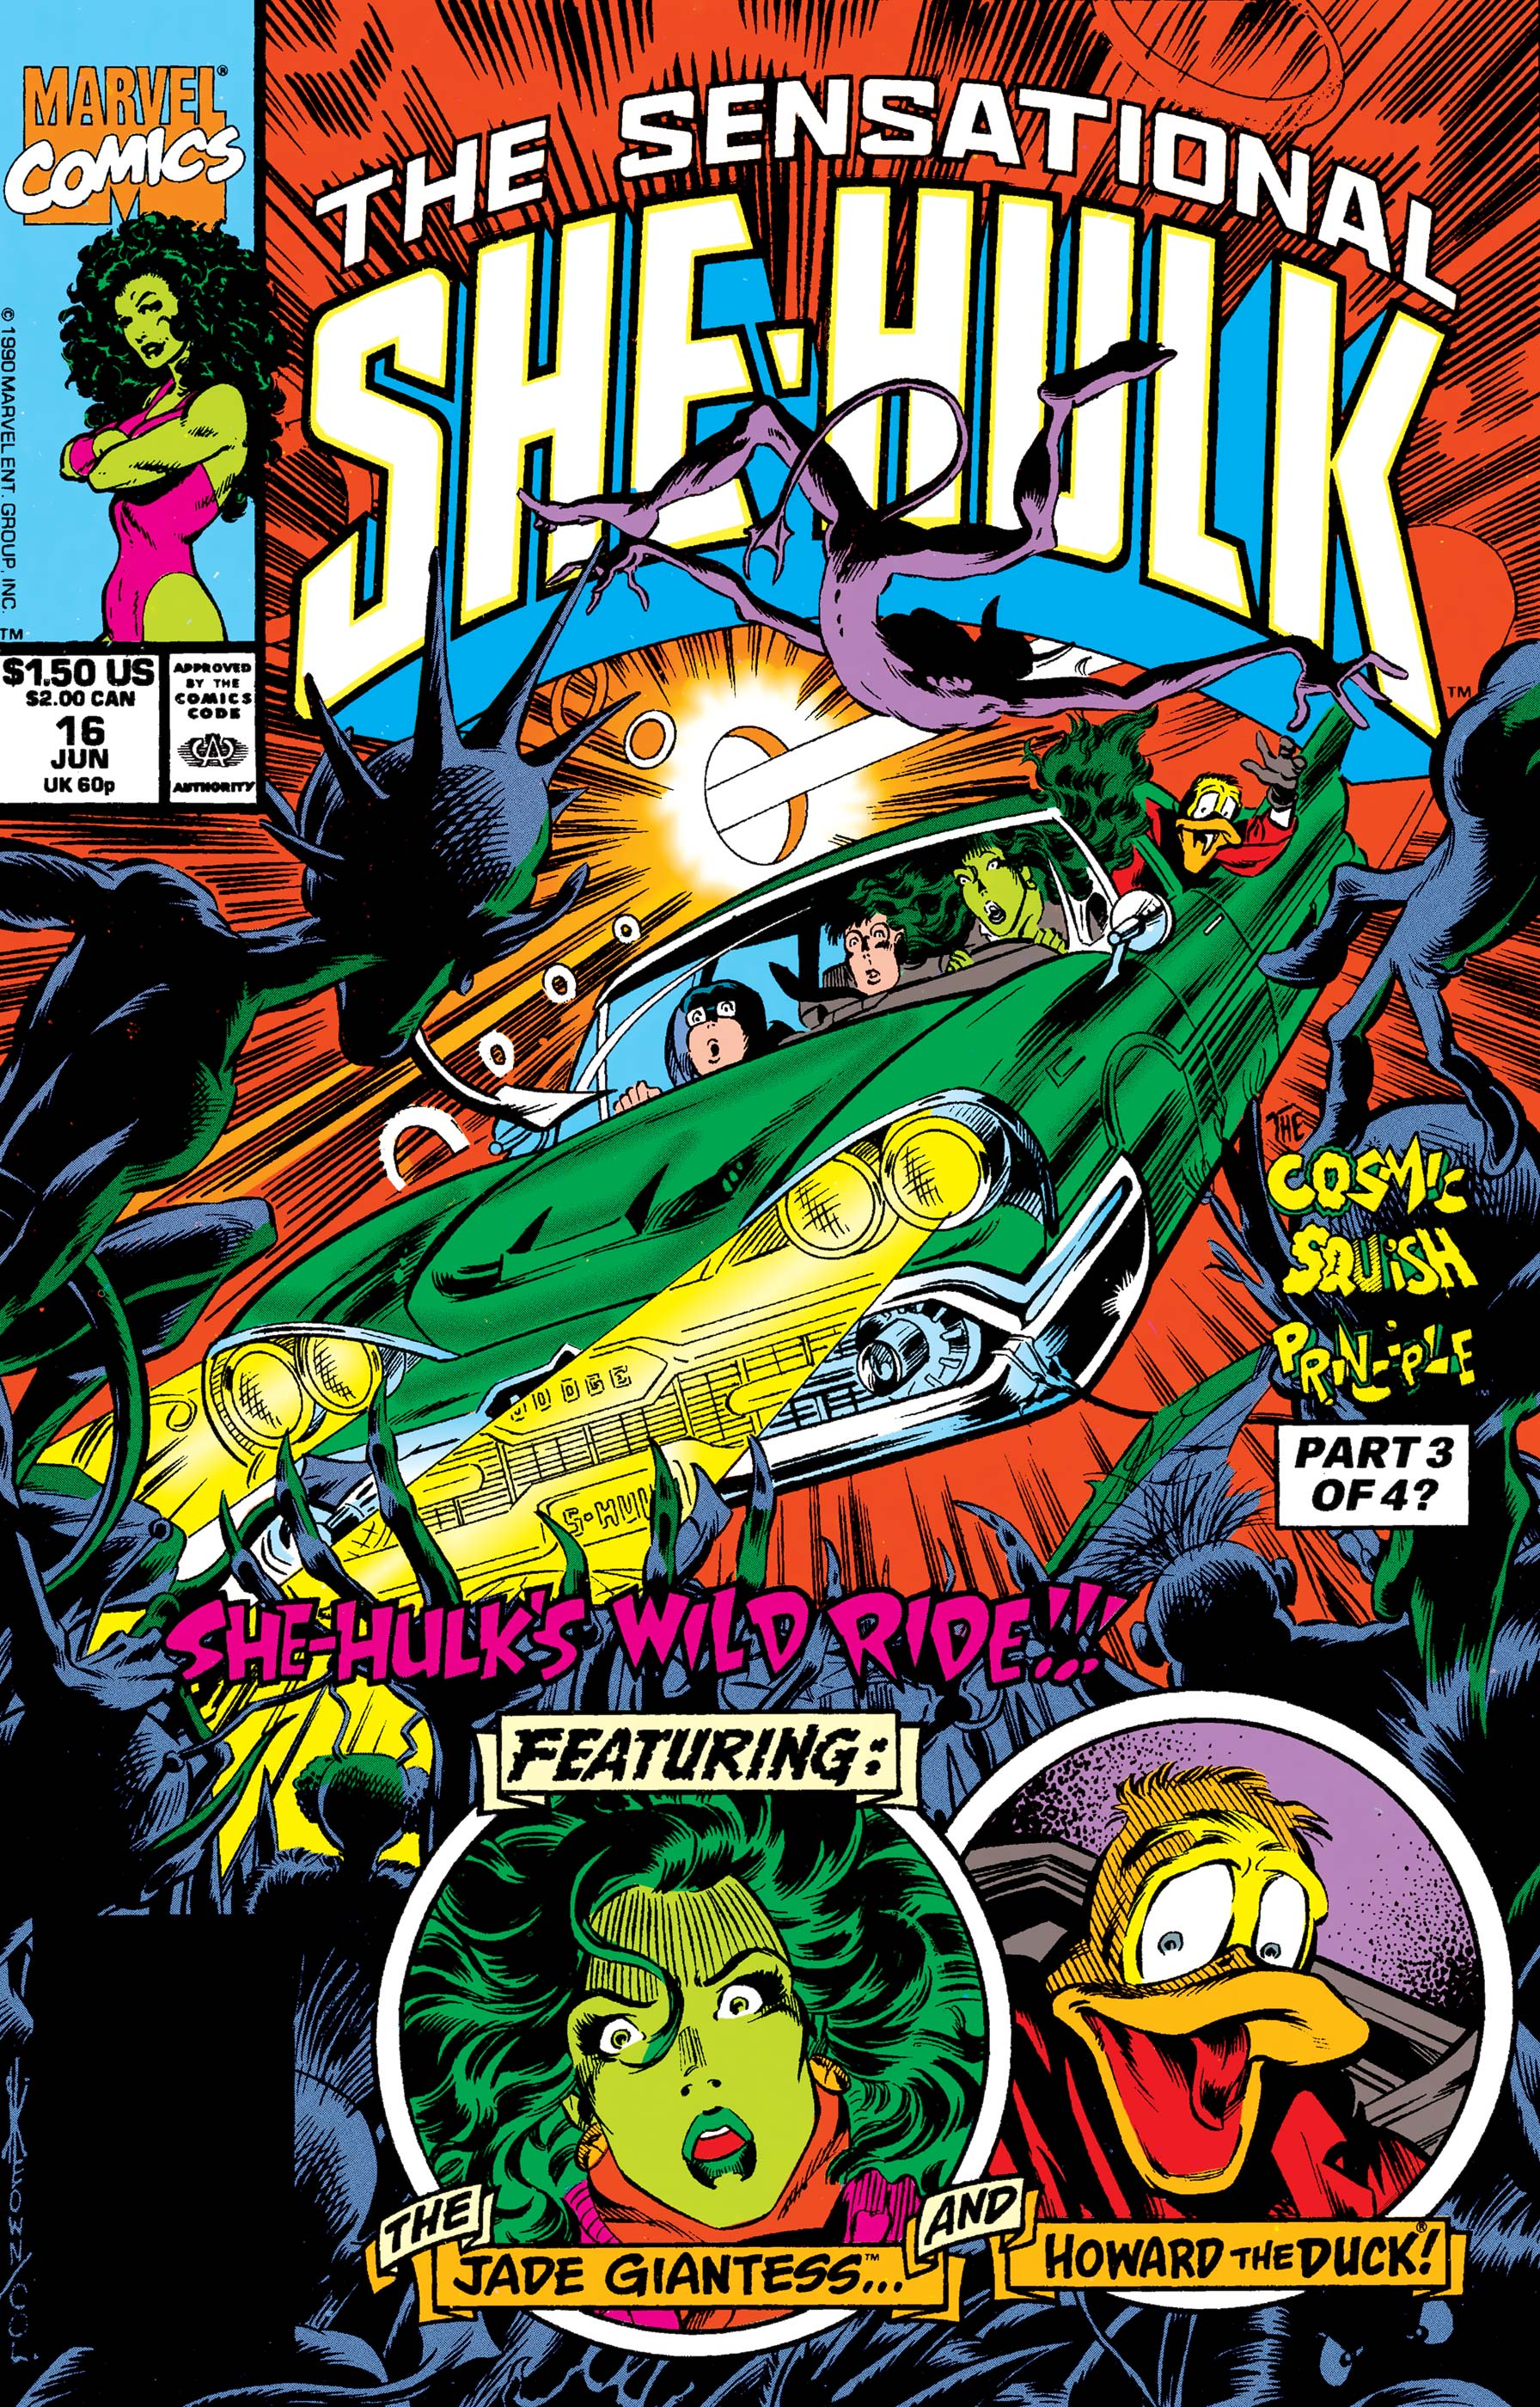 Sensational She-Hulk (1989) #16